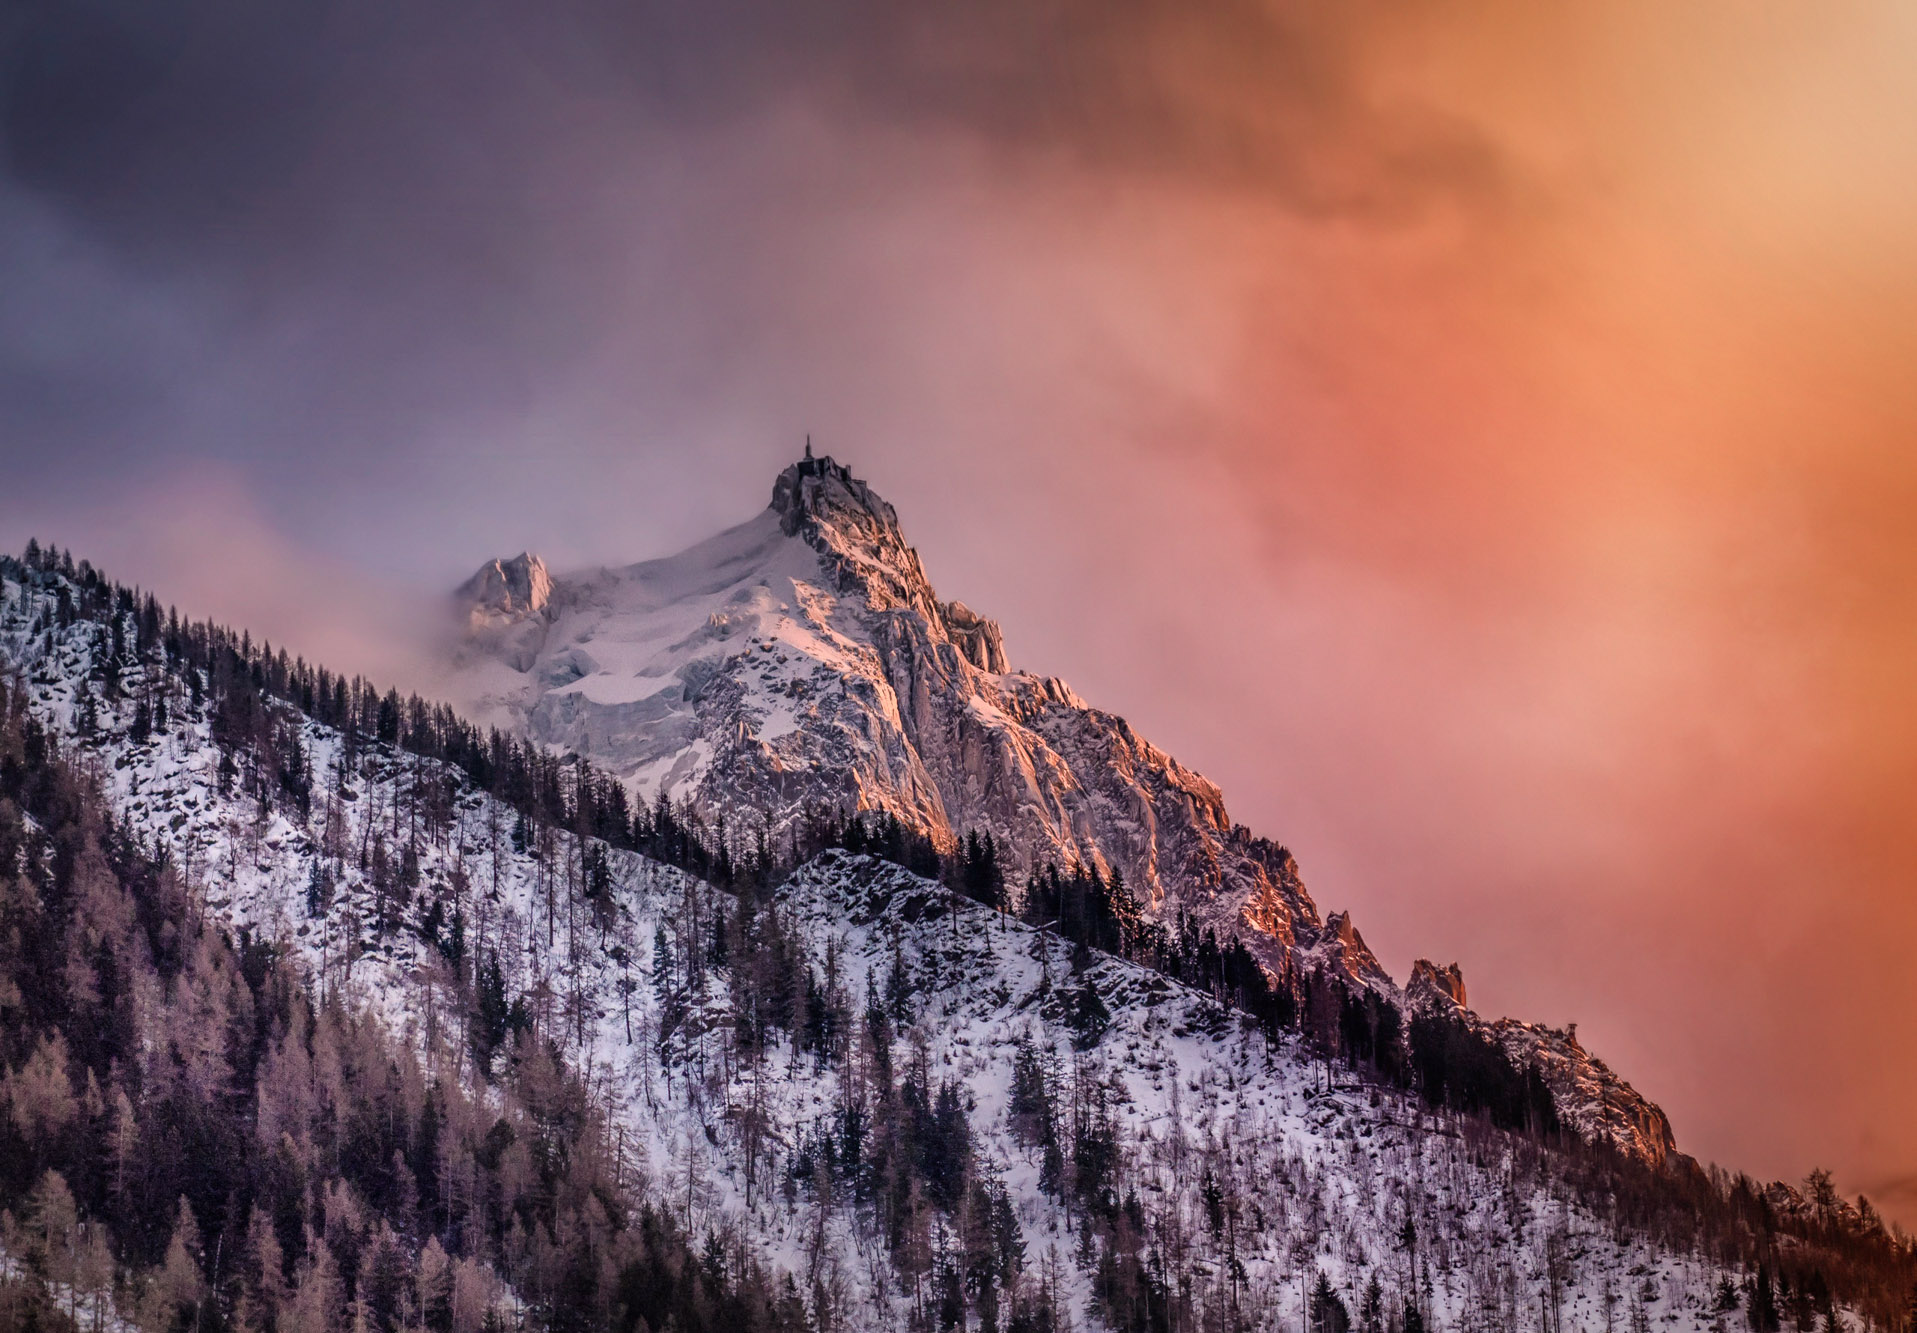 antonyz long exposure landscape photograph of mountains in the Alps at sunset